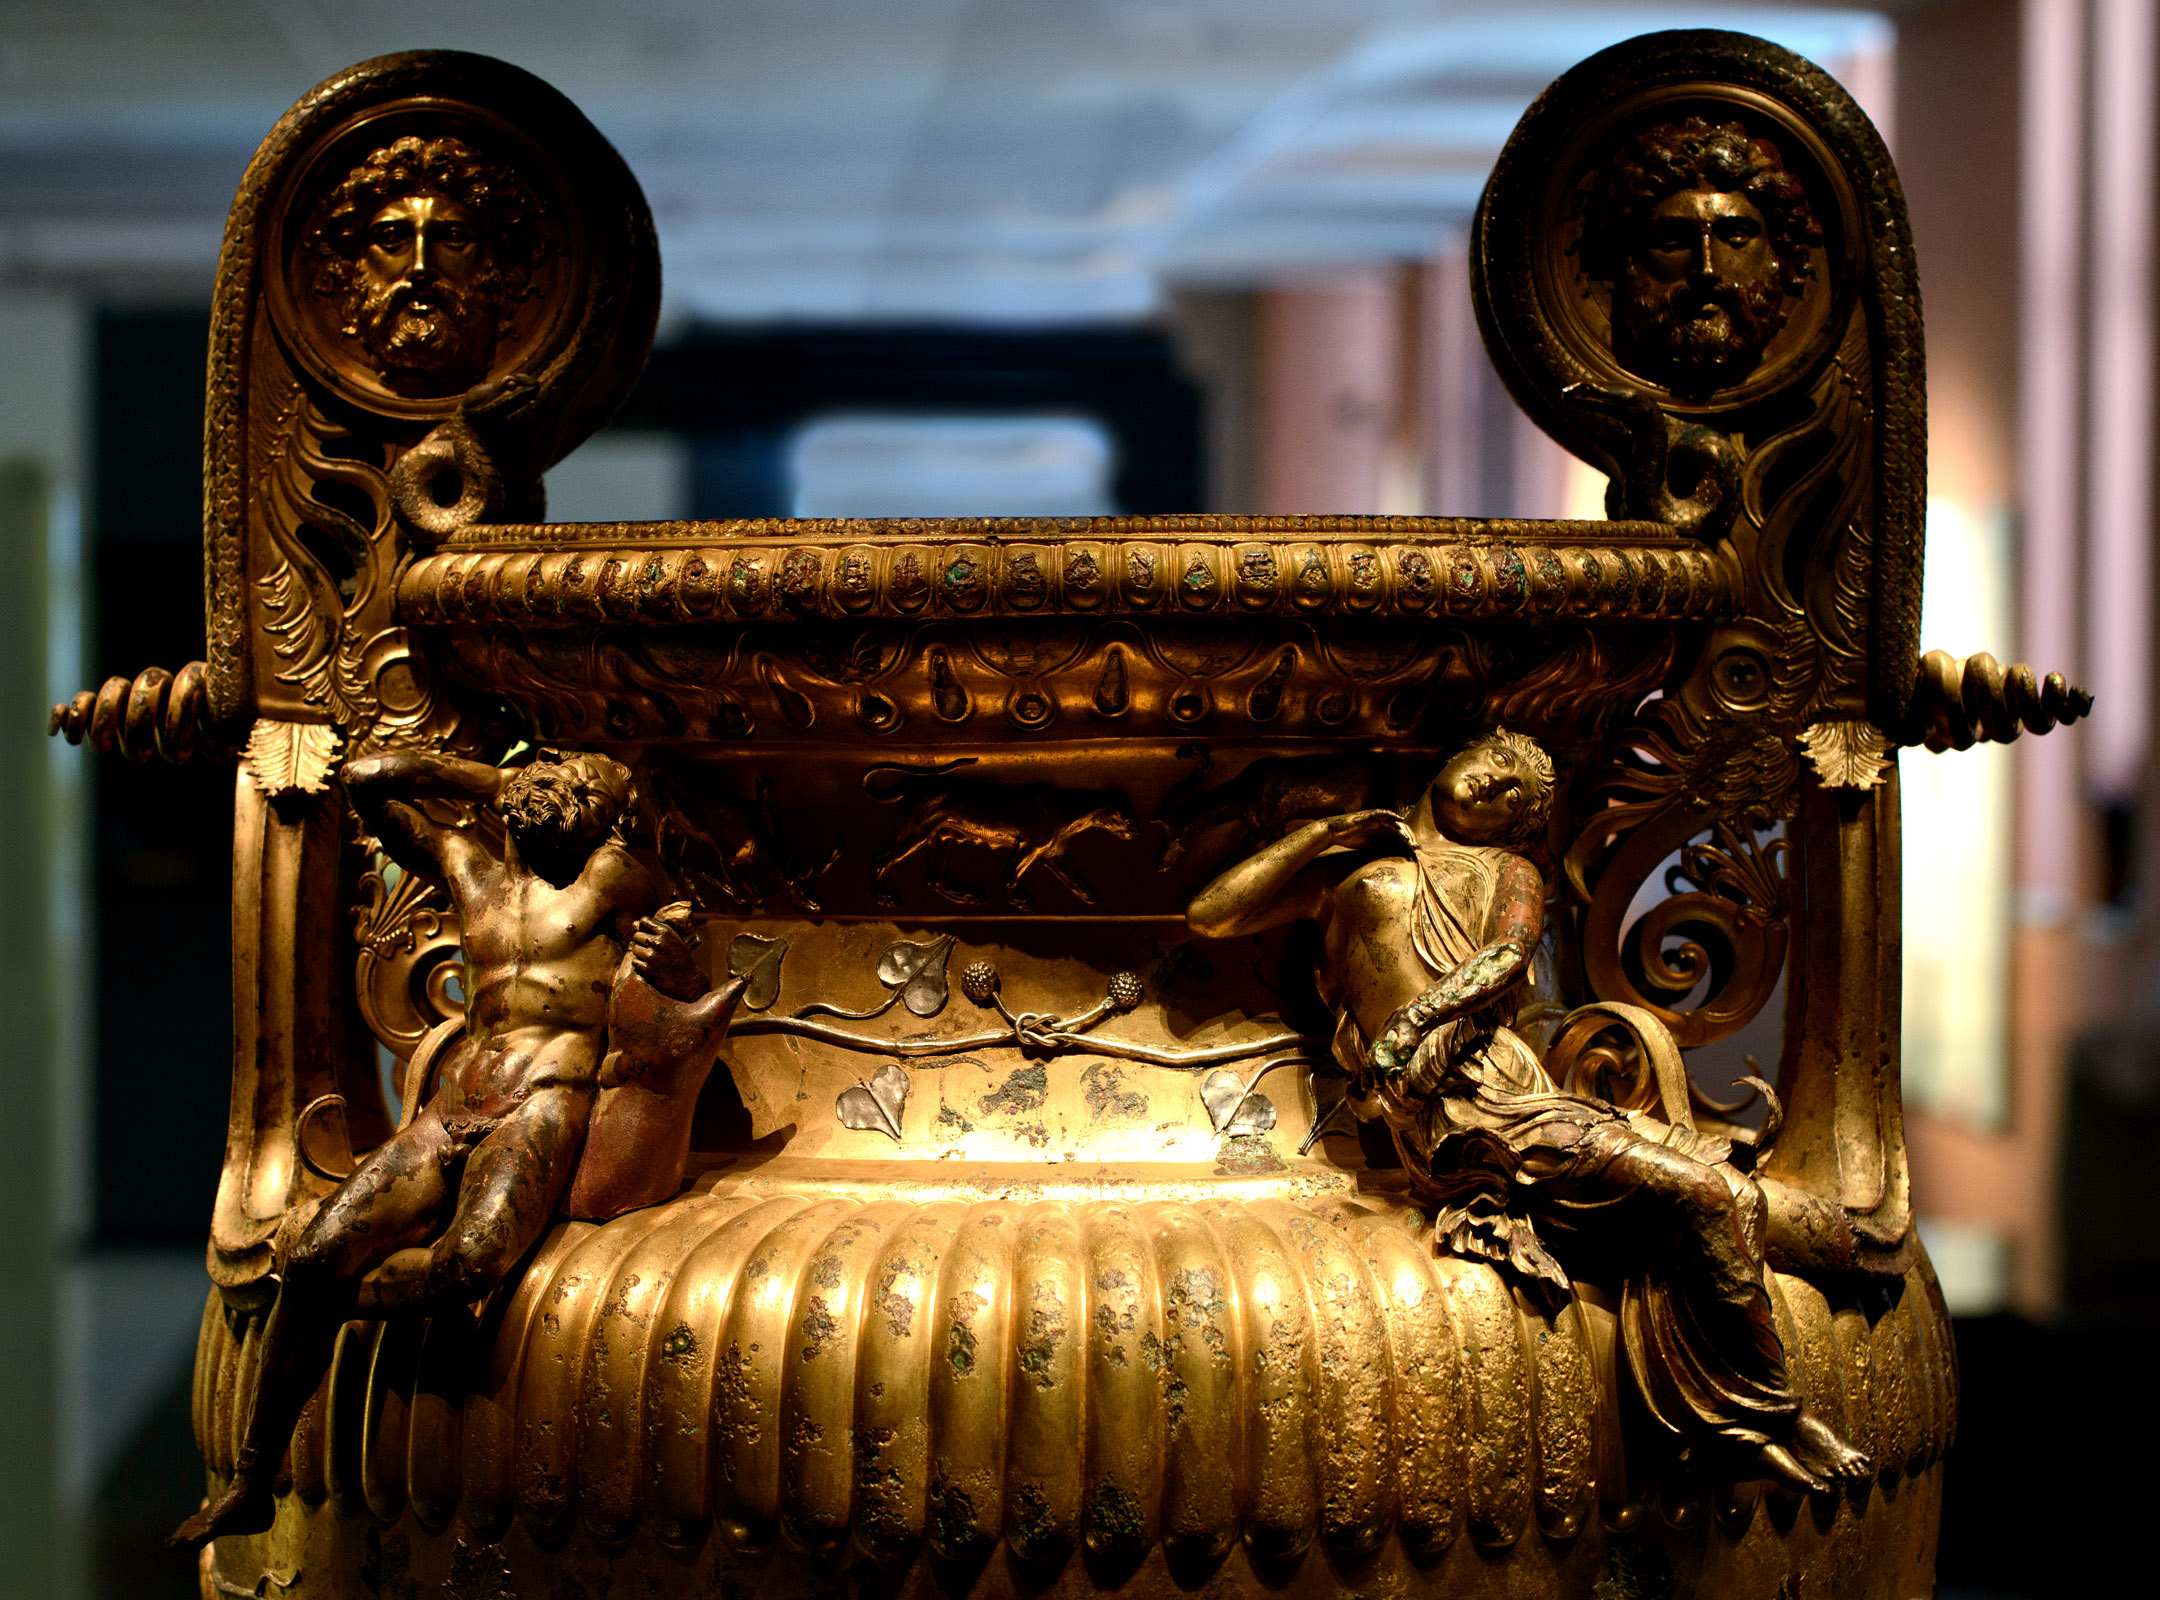 The Derveni krater (close up). Bronze. 330—320 BCE. Inv. No. B1. Thessaloniki, Archaeological Museum